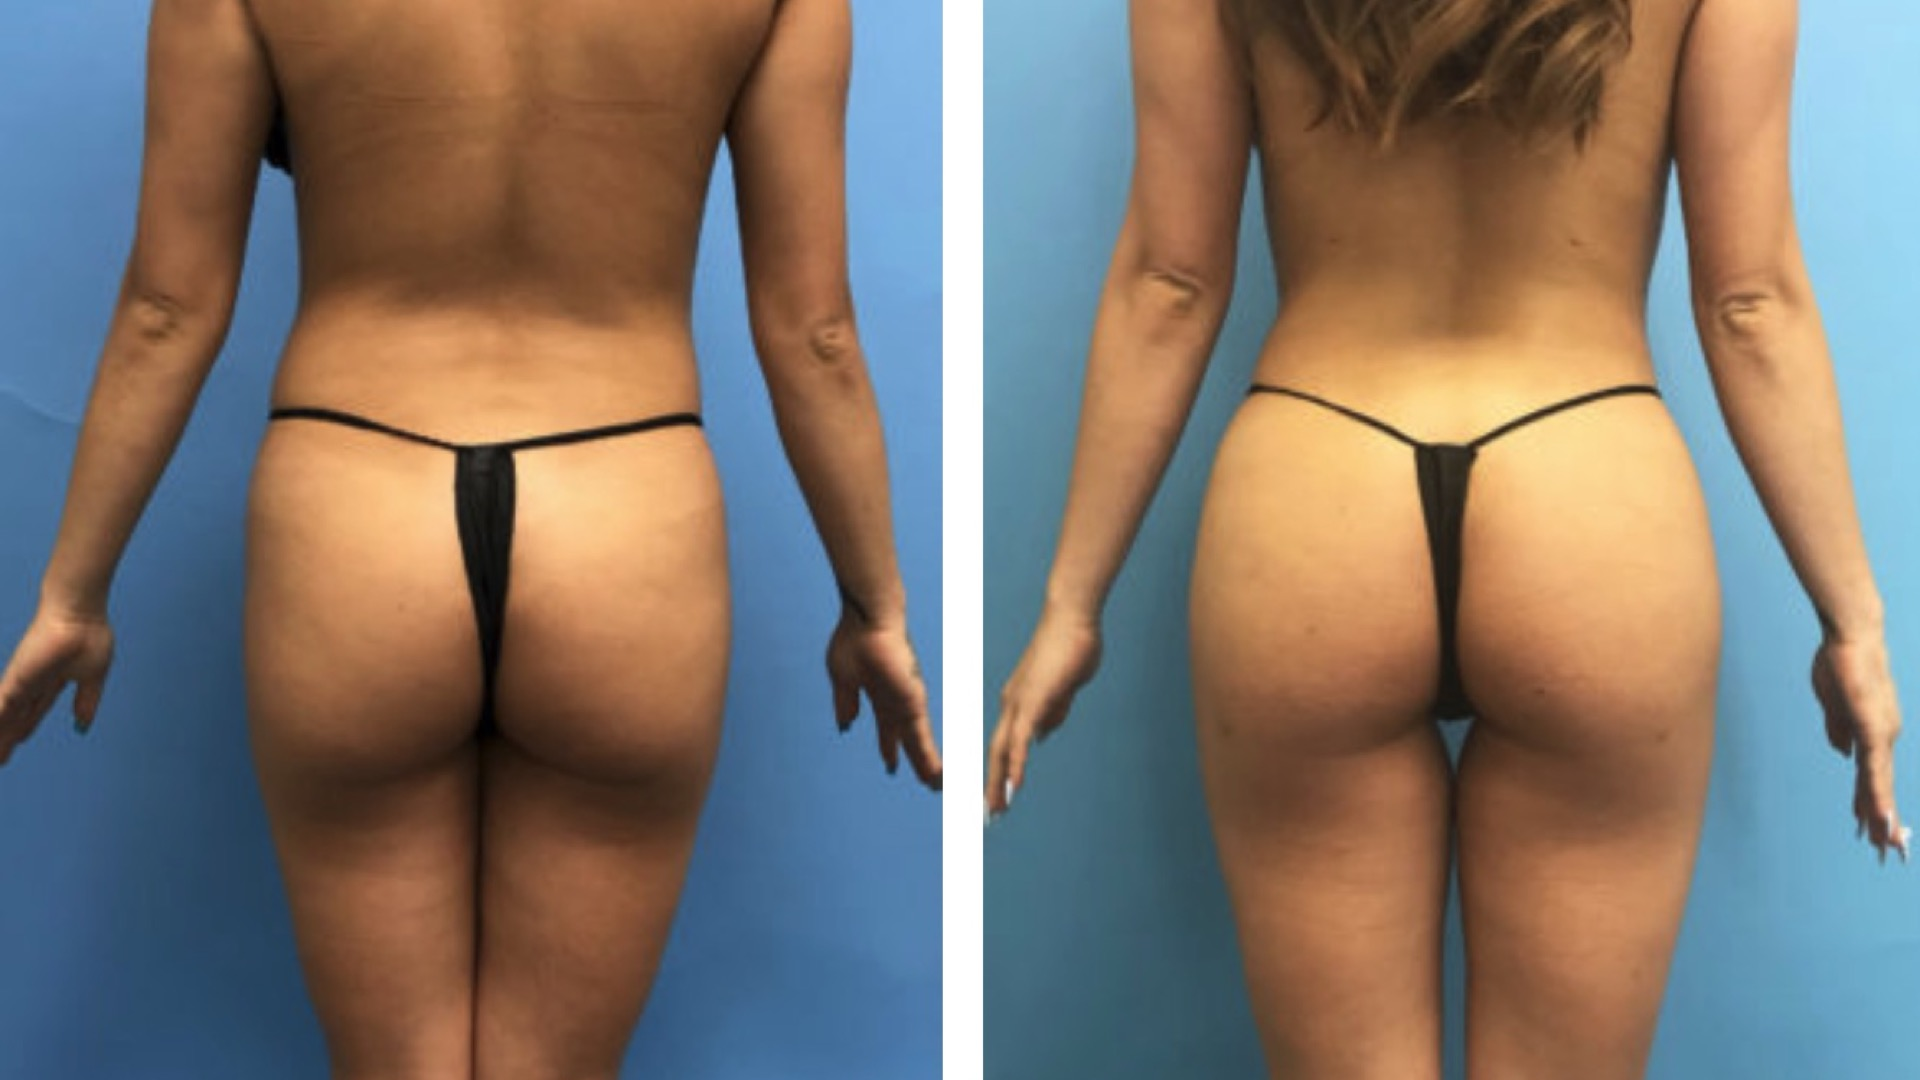 brazilian butt lift image before and after